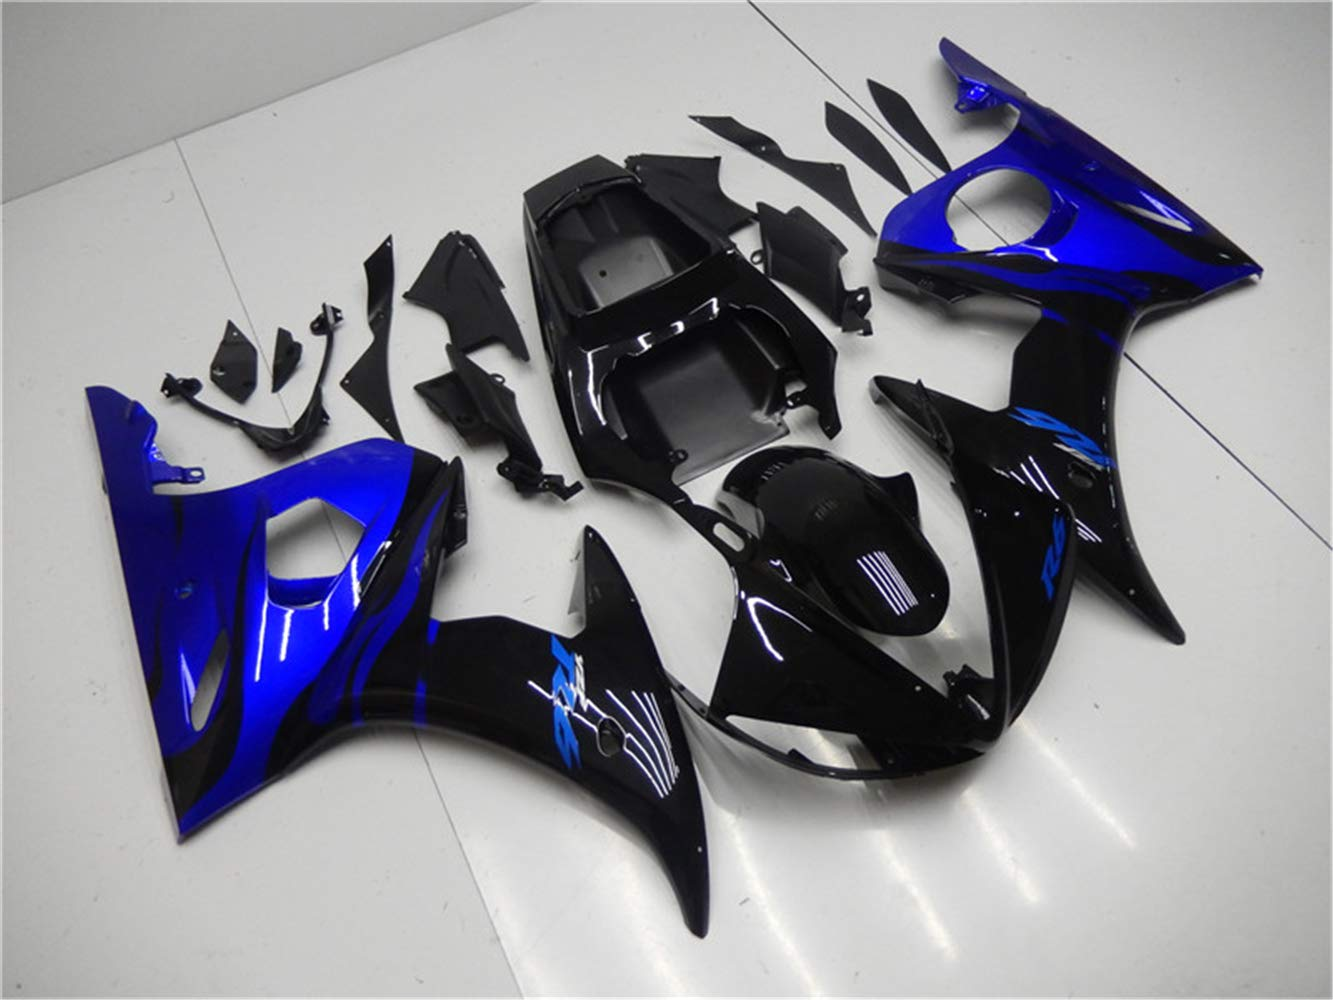 NT FAIRING Blue Black Flames Injection Mold Fairing Fit for Yamaha YZF 2003-2005 R6 /& 2006-2009 R6S New Painted Kit ABS Plastic Motorcycle Bodywork Aftermarket